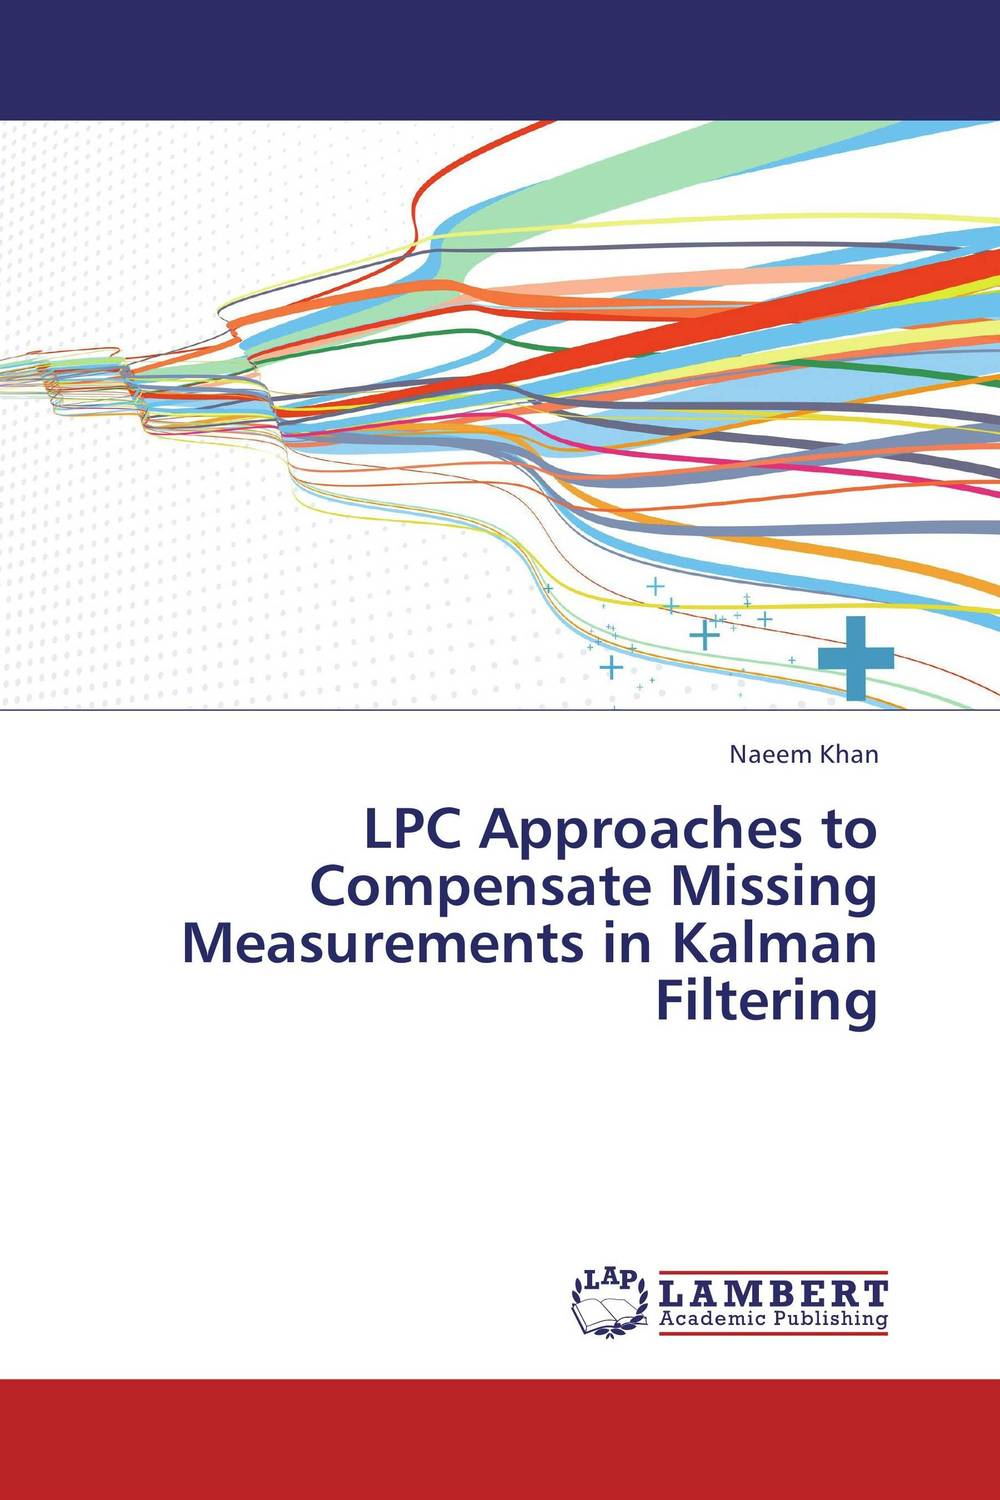 LPC Approaches to Compensate Missing Measurements in Kalman Filtering healey e elizabeth is missing